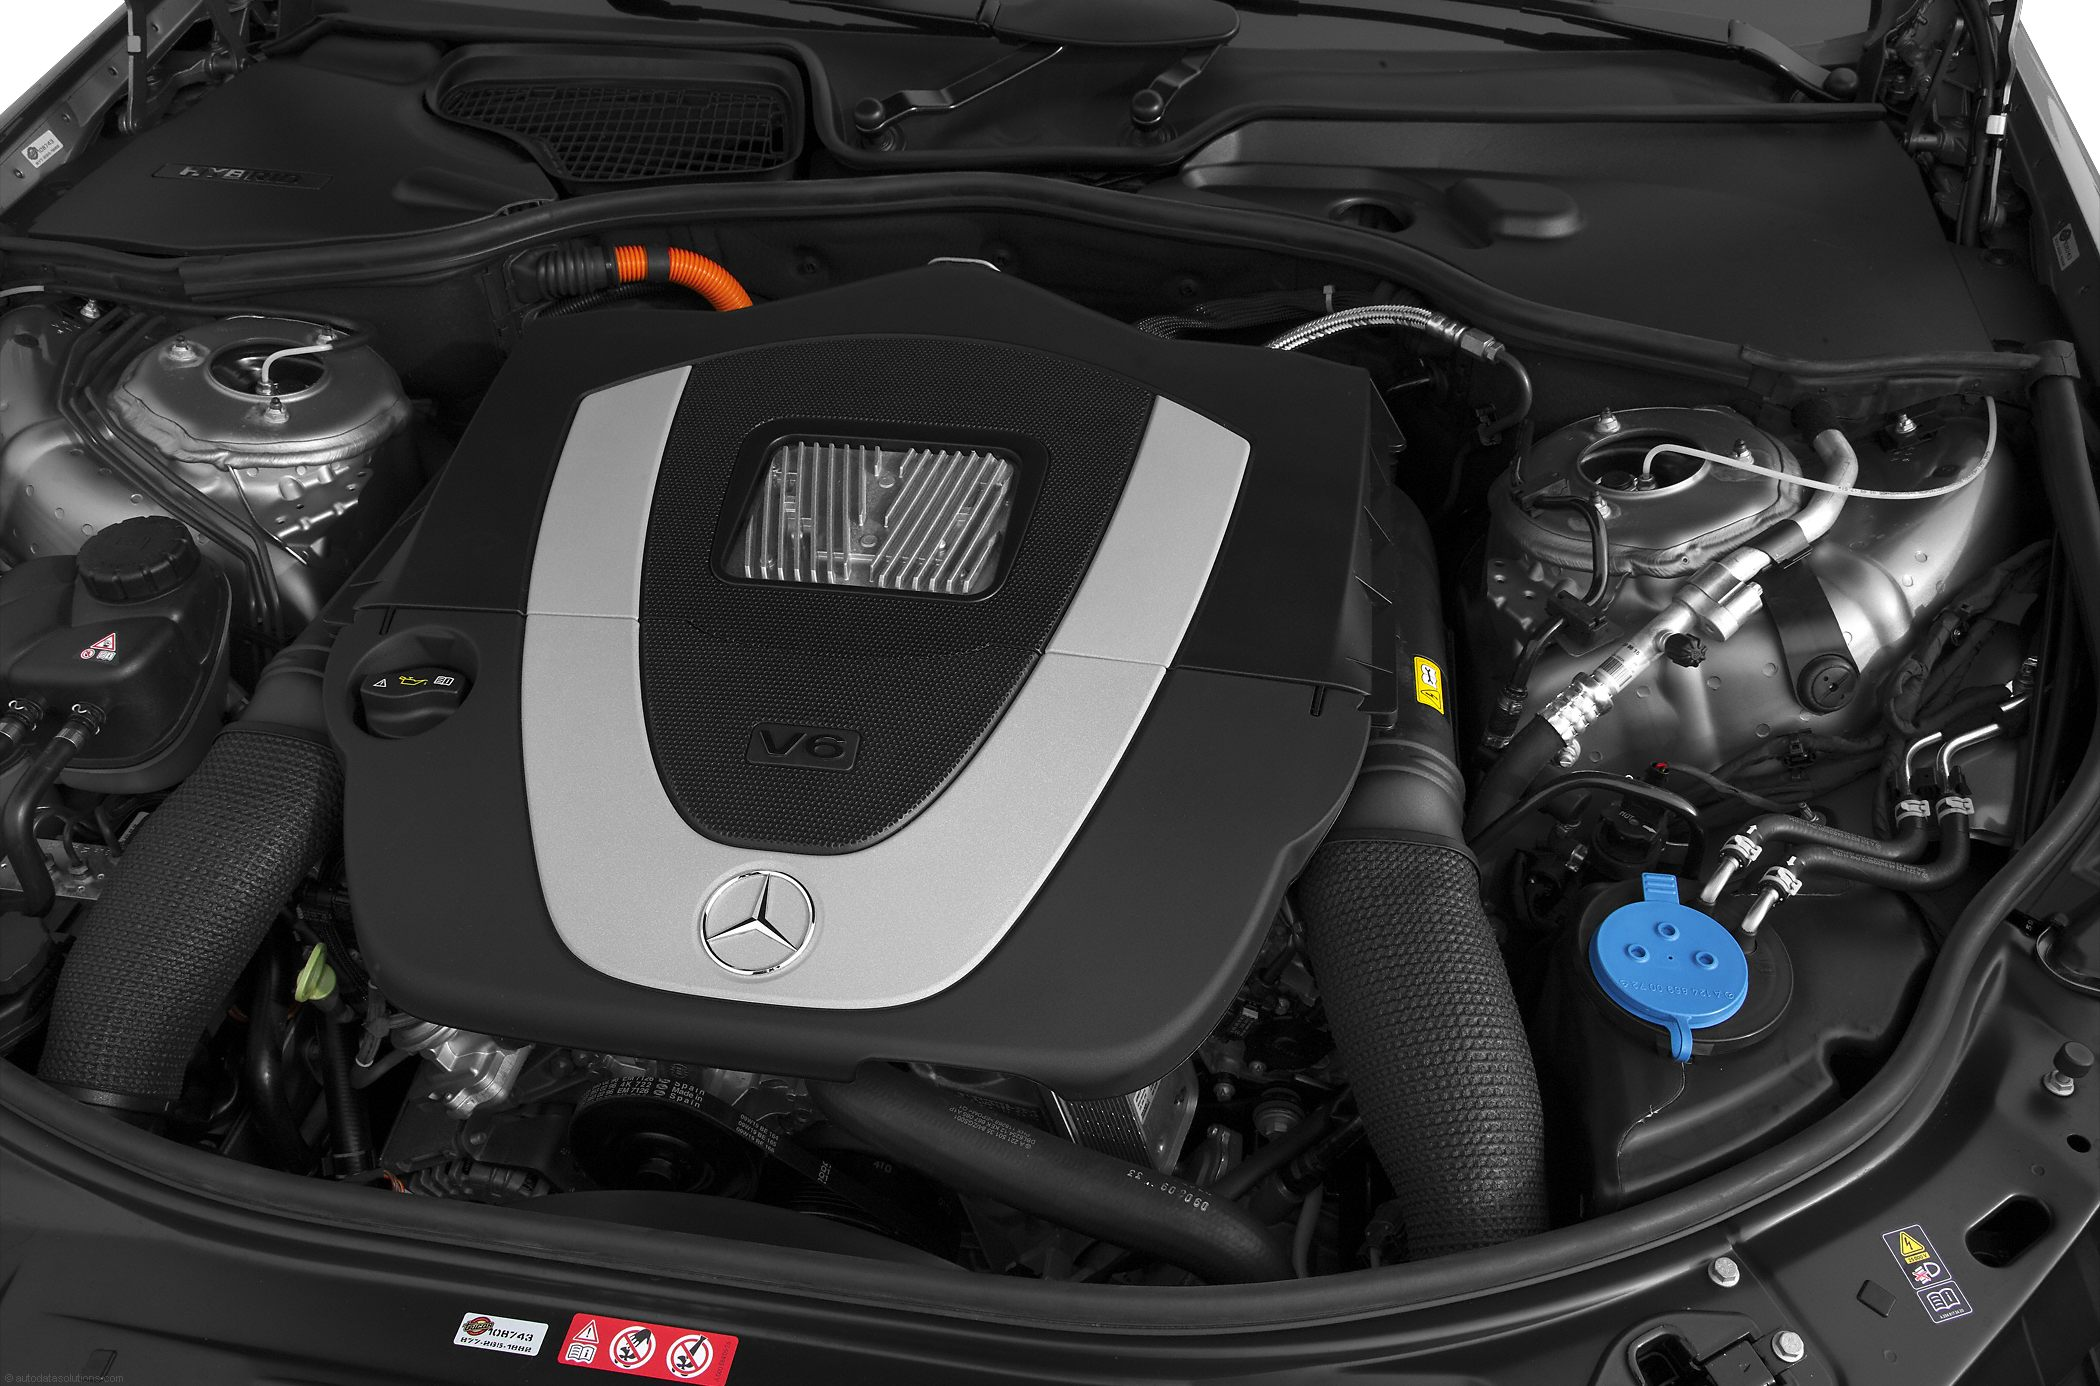 Mercedes-Benz S-Class engine #1